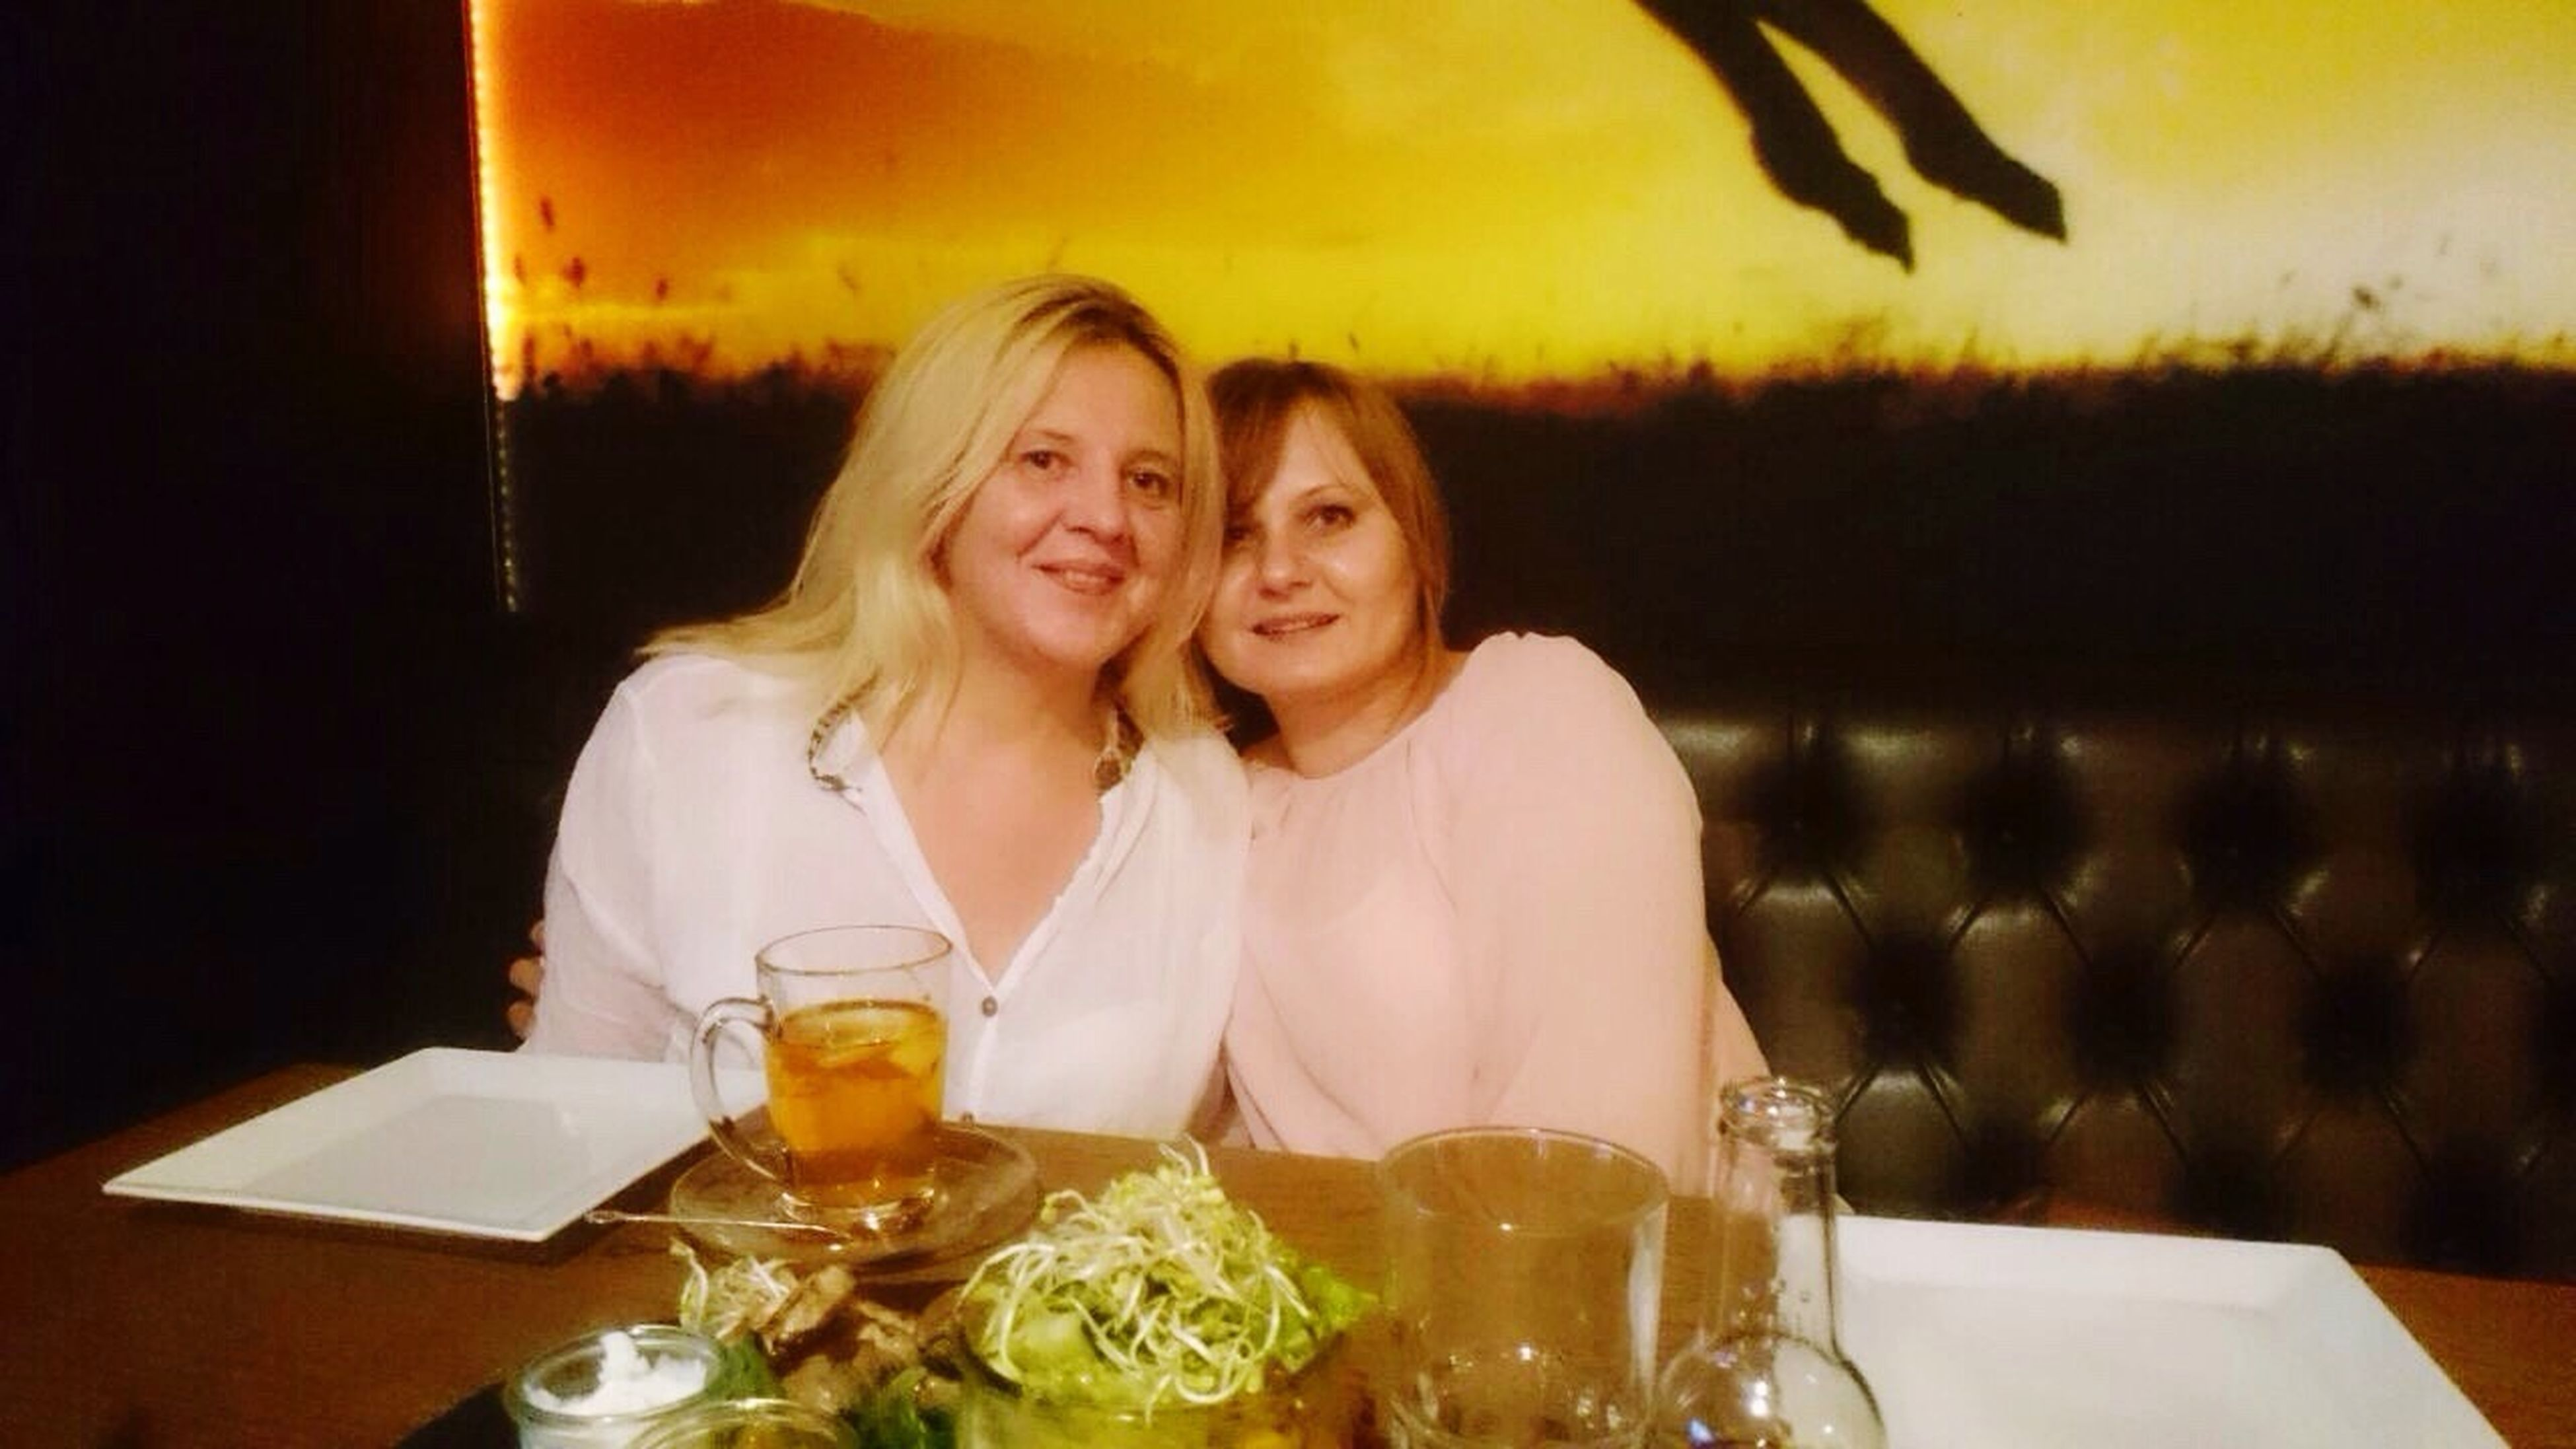 table, two people, food and drink, sitting, togetherness, smiling, looking at camera, portrait, indoors, happiness, young adult, friendship, young women, real people, night, people, food, blond hair, close-up, adult, adults only